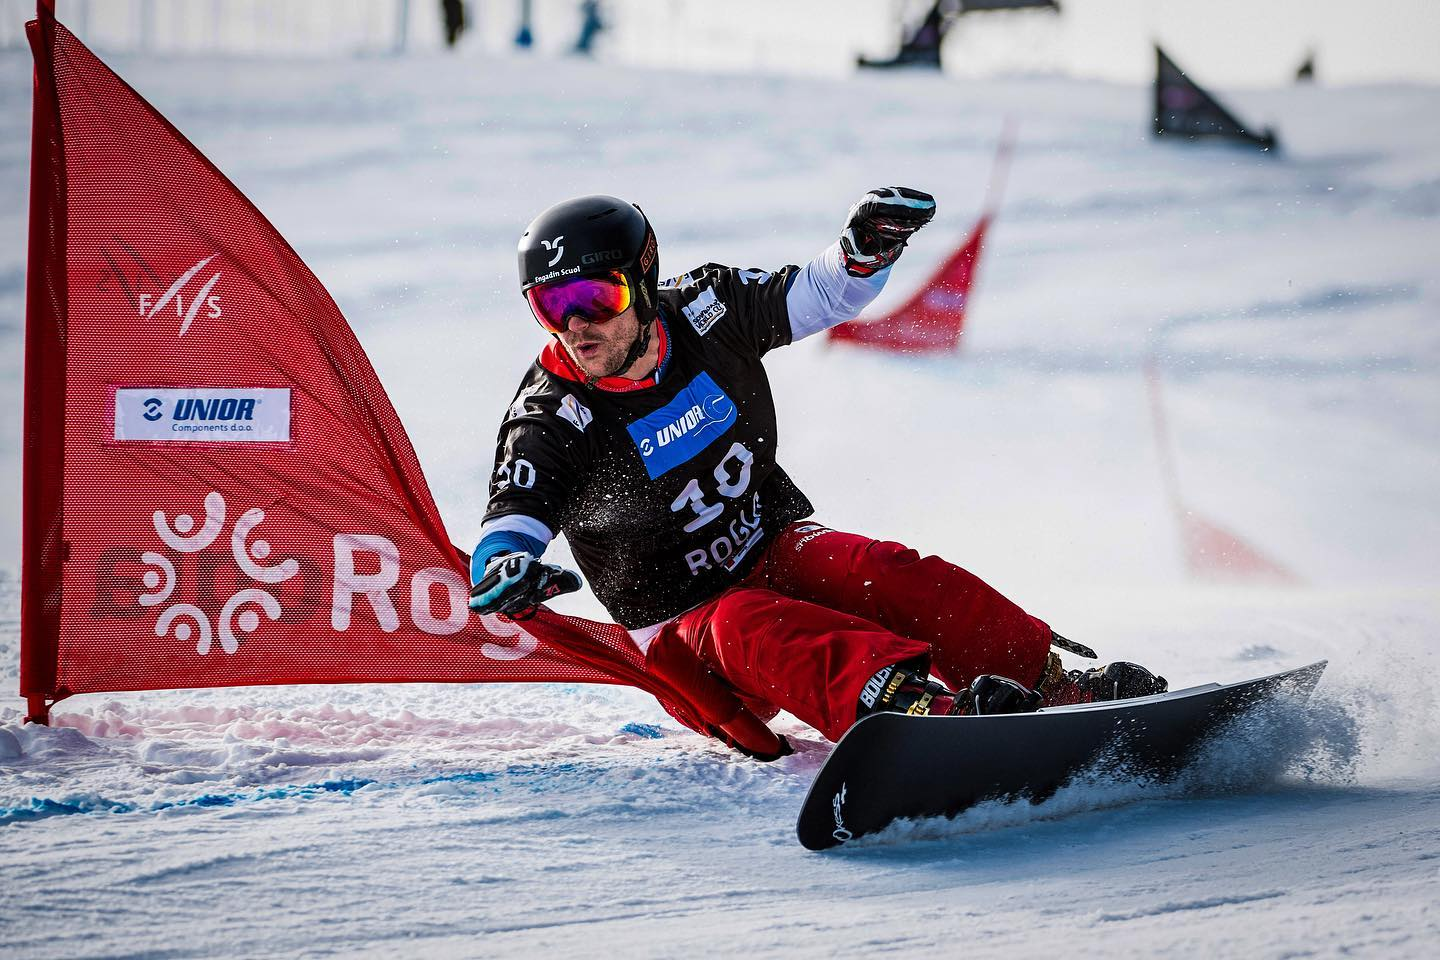 Recently I'm getting asked the same question over and over again: Are we gonna race the @fissnowboard World Cup tour during the Covid-19 pandemic? So, as things are changing rapildy right now it's probably hard to tell. But fact is that we do have a stacked World Cup tour on the calendar with races in Switzerland (@engadinscuolzernez ), Italy, Austria, Germany, Slowenia, South Korea, Russia and a World Champaionships in China. Only two World Cups in Canada got cancelled so far. I guess all the local organizers do their best to make it happen, while still being dependent on something entirely uncontrollable. What does that mean for me: It means nothing. I focus on what I can influence and that's my training. And when there is a race, I will be ready.